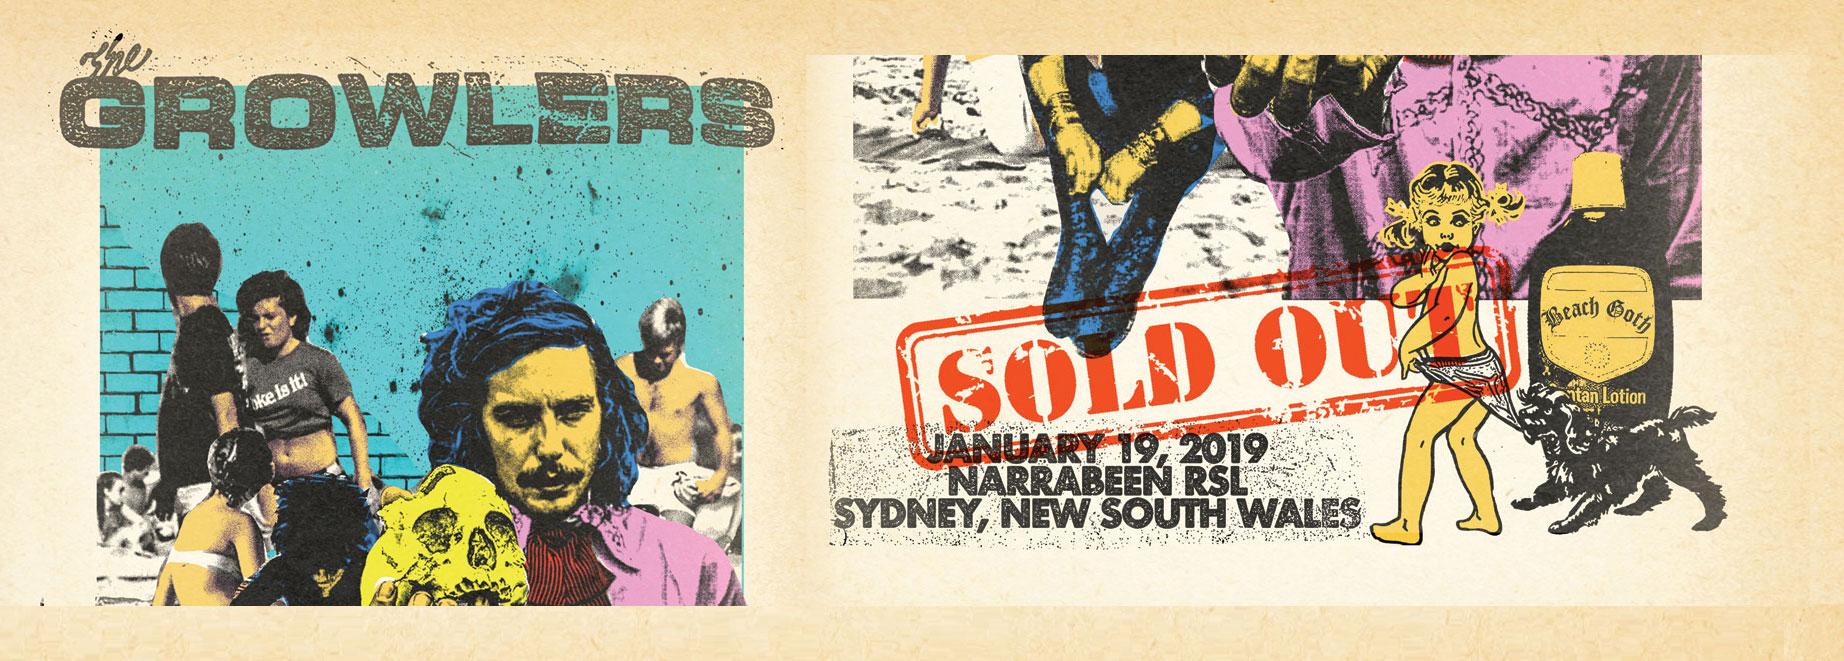 The Growlers - Beach Goth Tour - Australia - Sydney